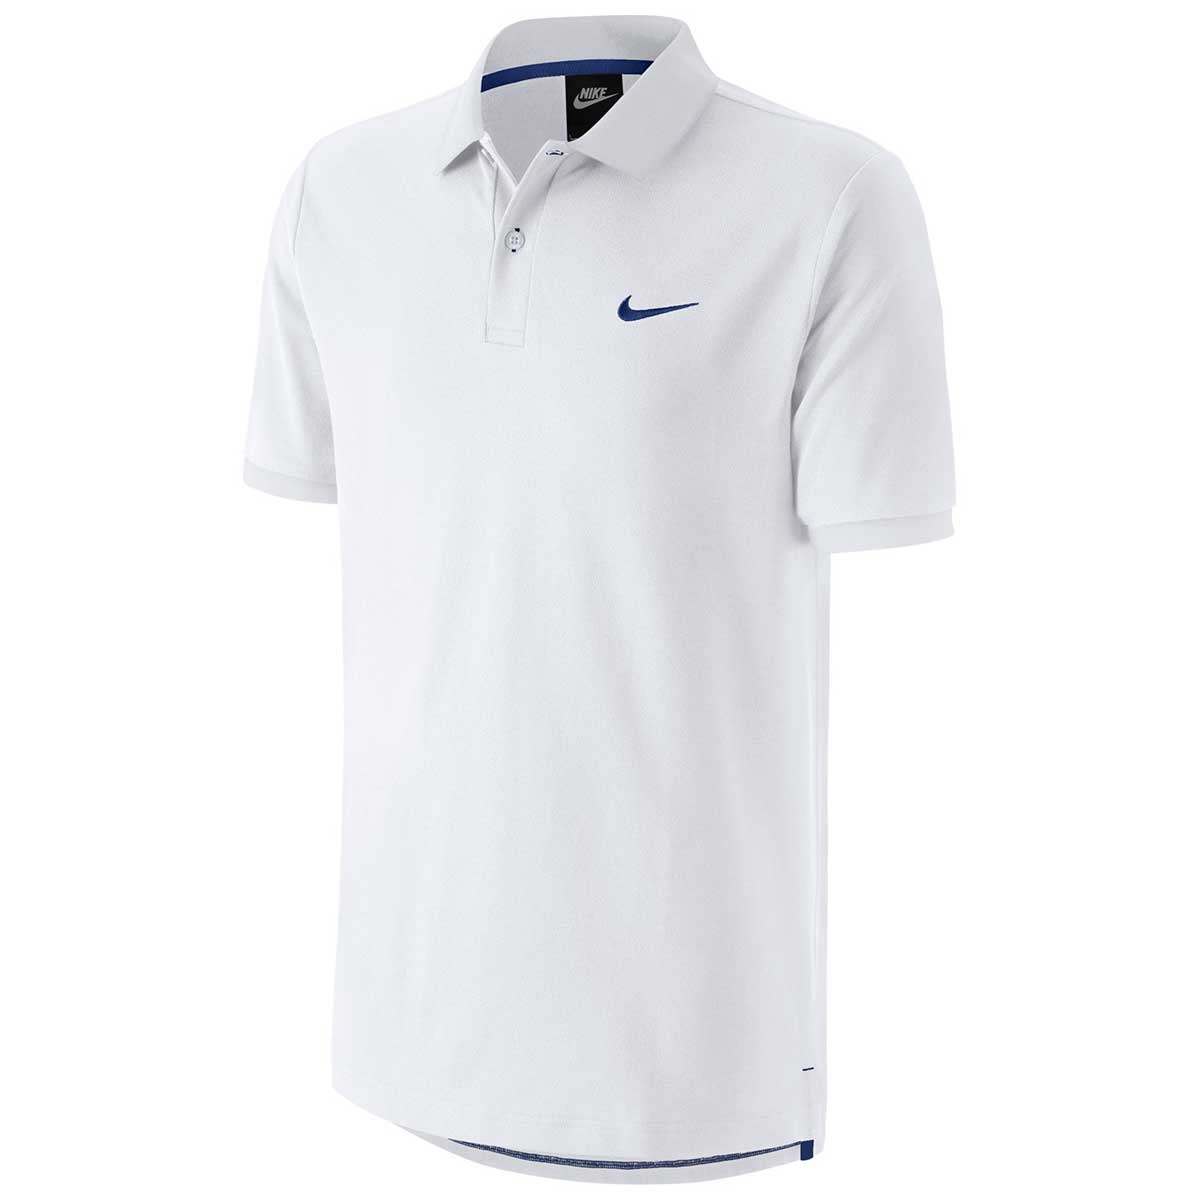 Buy Nike Men s Polo (White) Online in India 6ff08f3b2ad5